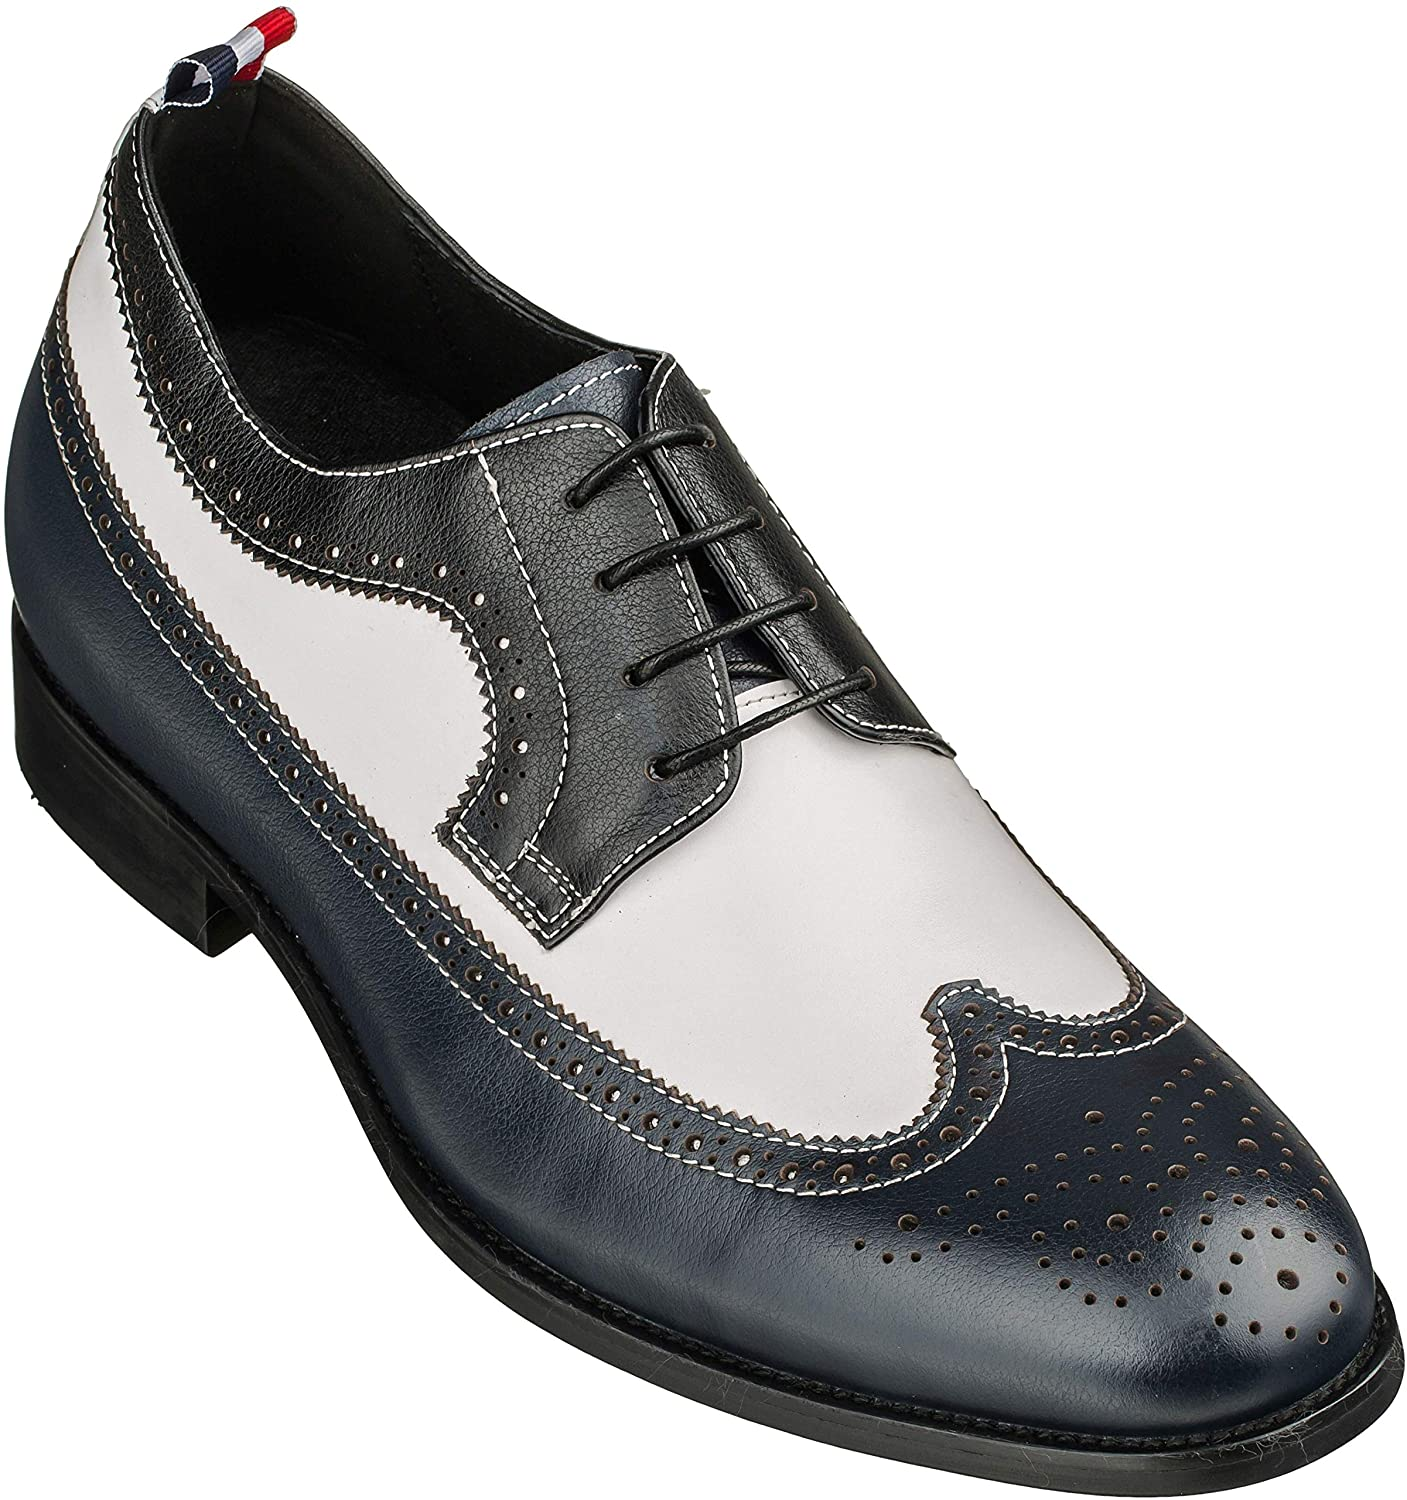 CALTO Men's Invisible Height Increasing Elevator Shoes - Navy/White/Black Premium Leather Lace-up Formal Wing-tip Oxfords - 3 Inches Taller - S0810